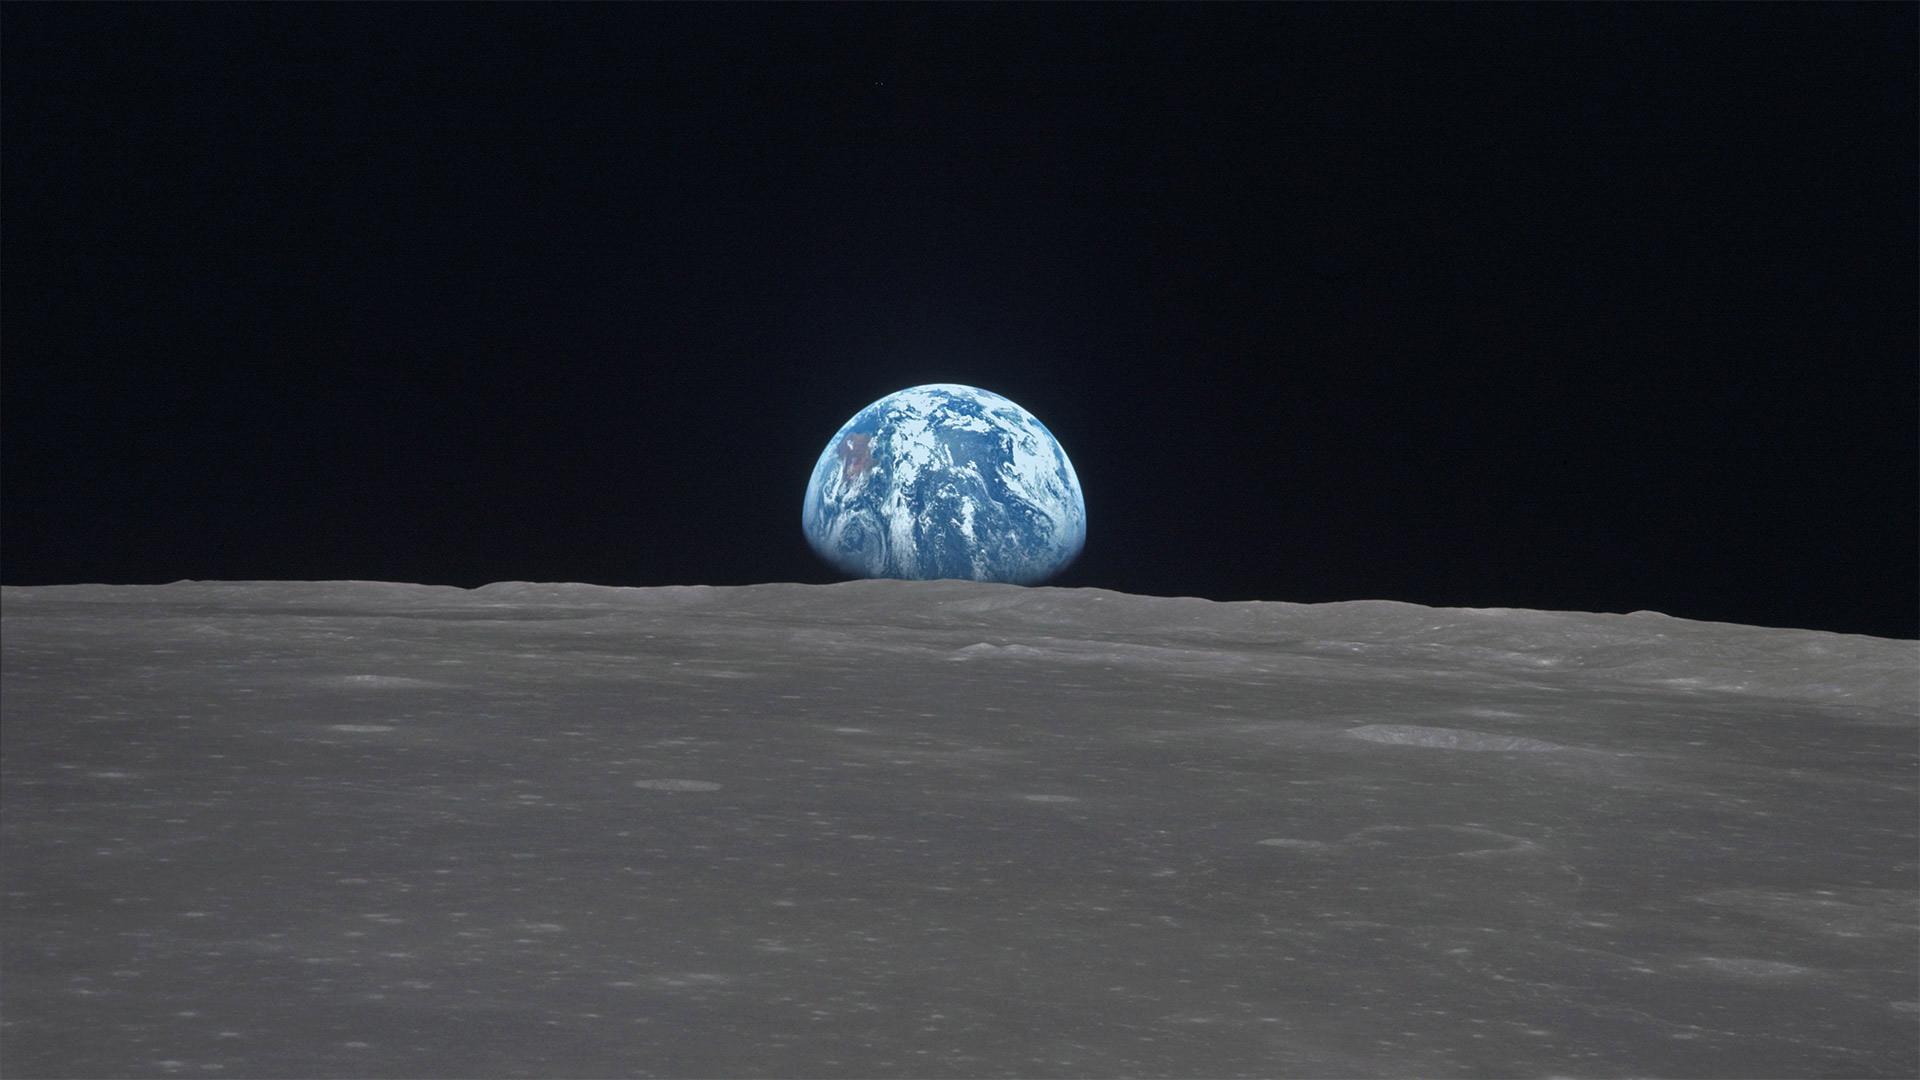 Kaguya spacecraft's view of Earth rising over the horizon of the Moon